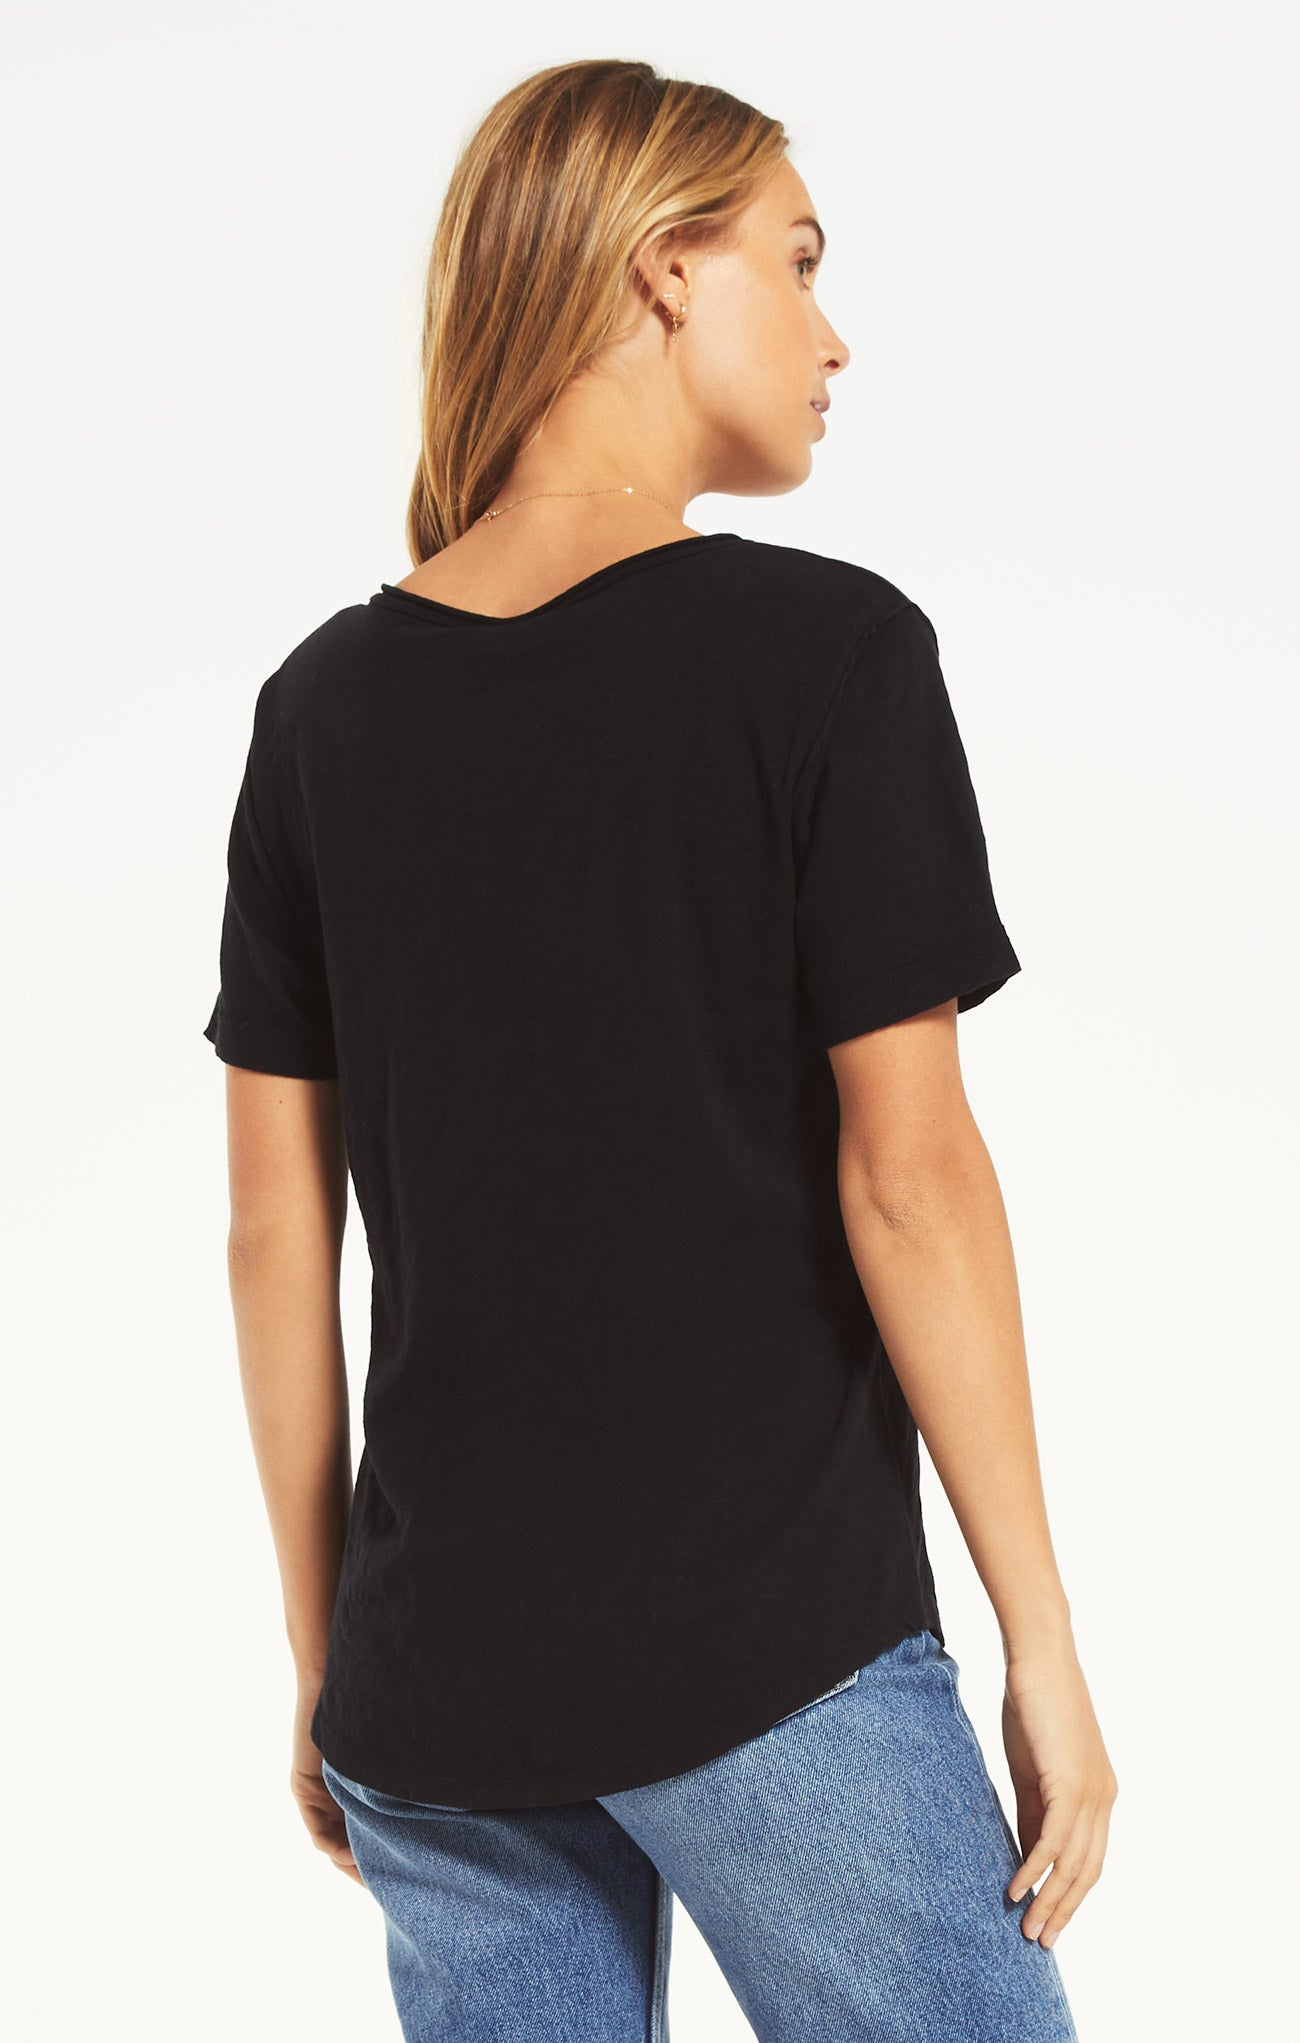 Tops Airy Slub Short Sleeve V-Neck Tee Black